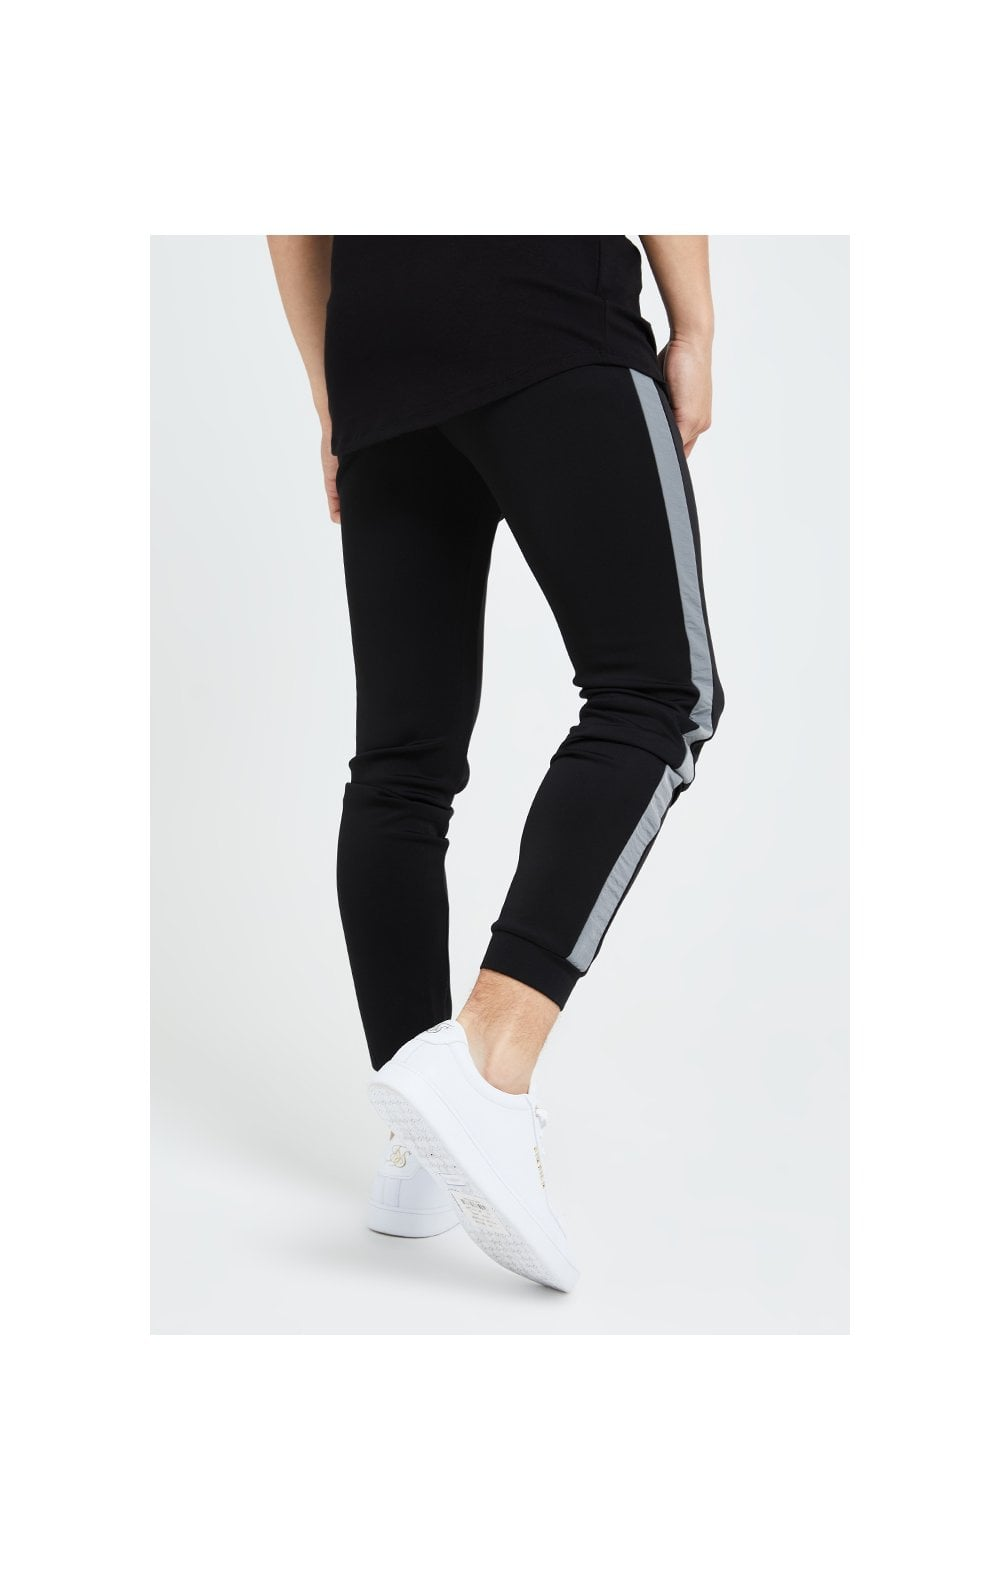 Illusive London Hybrid Joggers - Black & Grey (2)